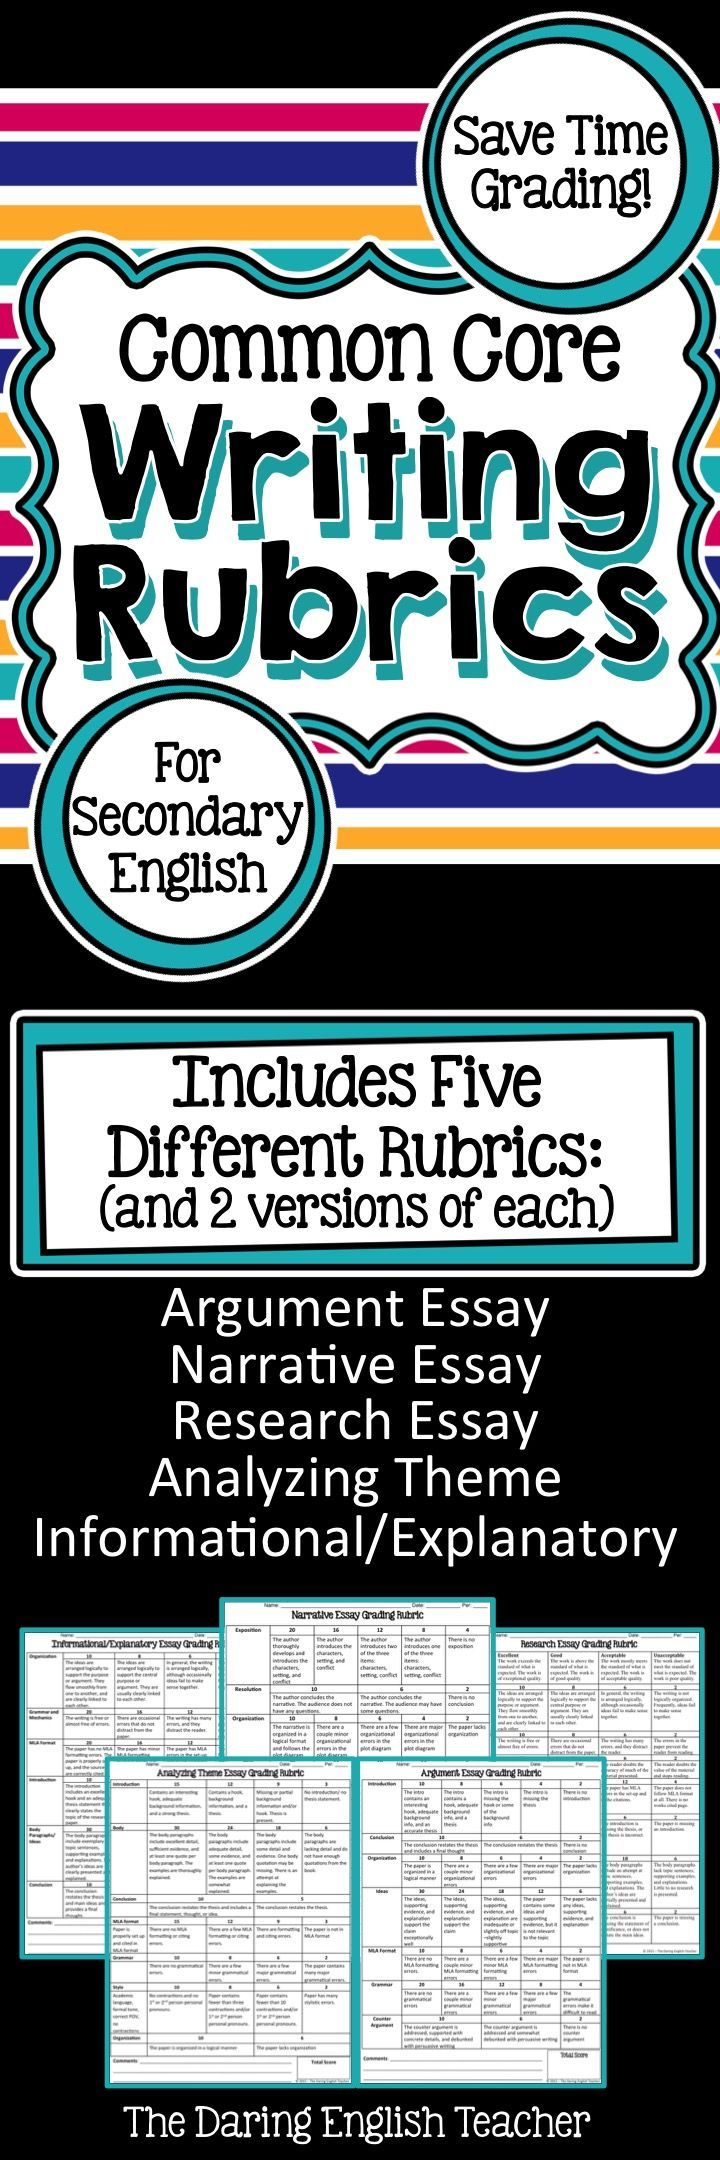 These CCSS aligned writing rubrics will help you save time grading your students' essays. They are ideal for secondary teachers.